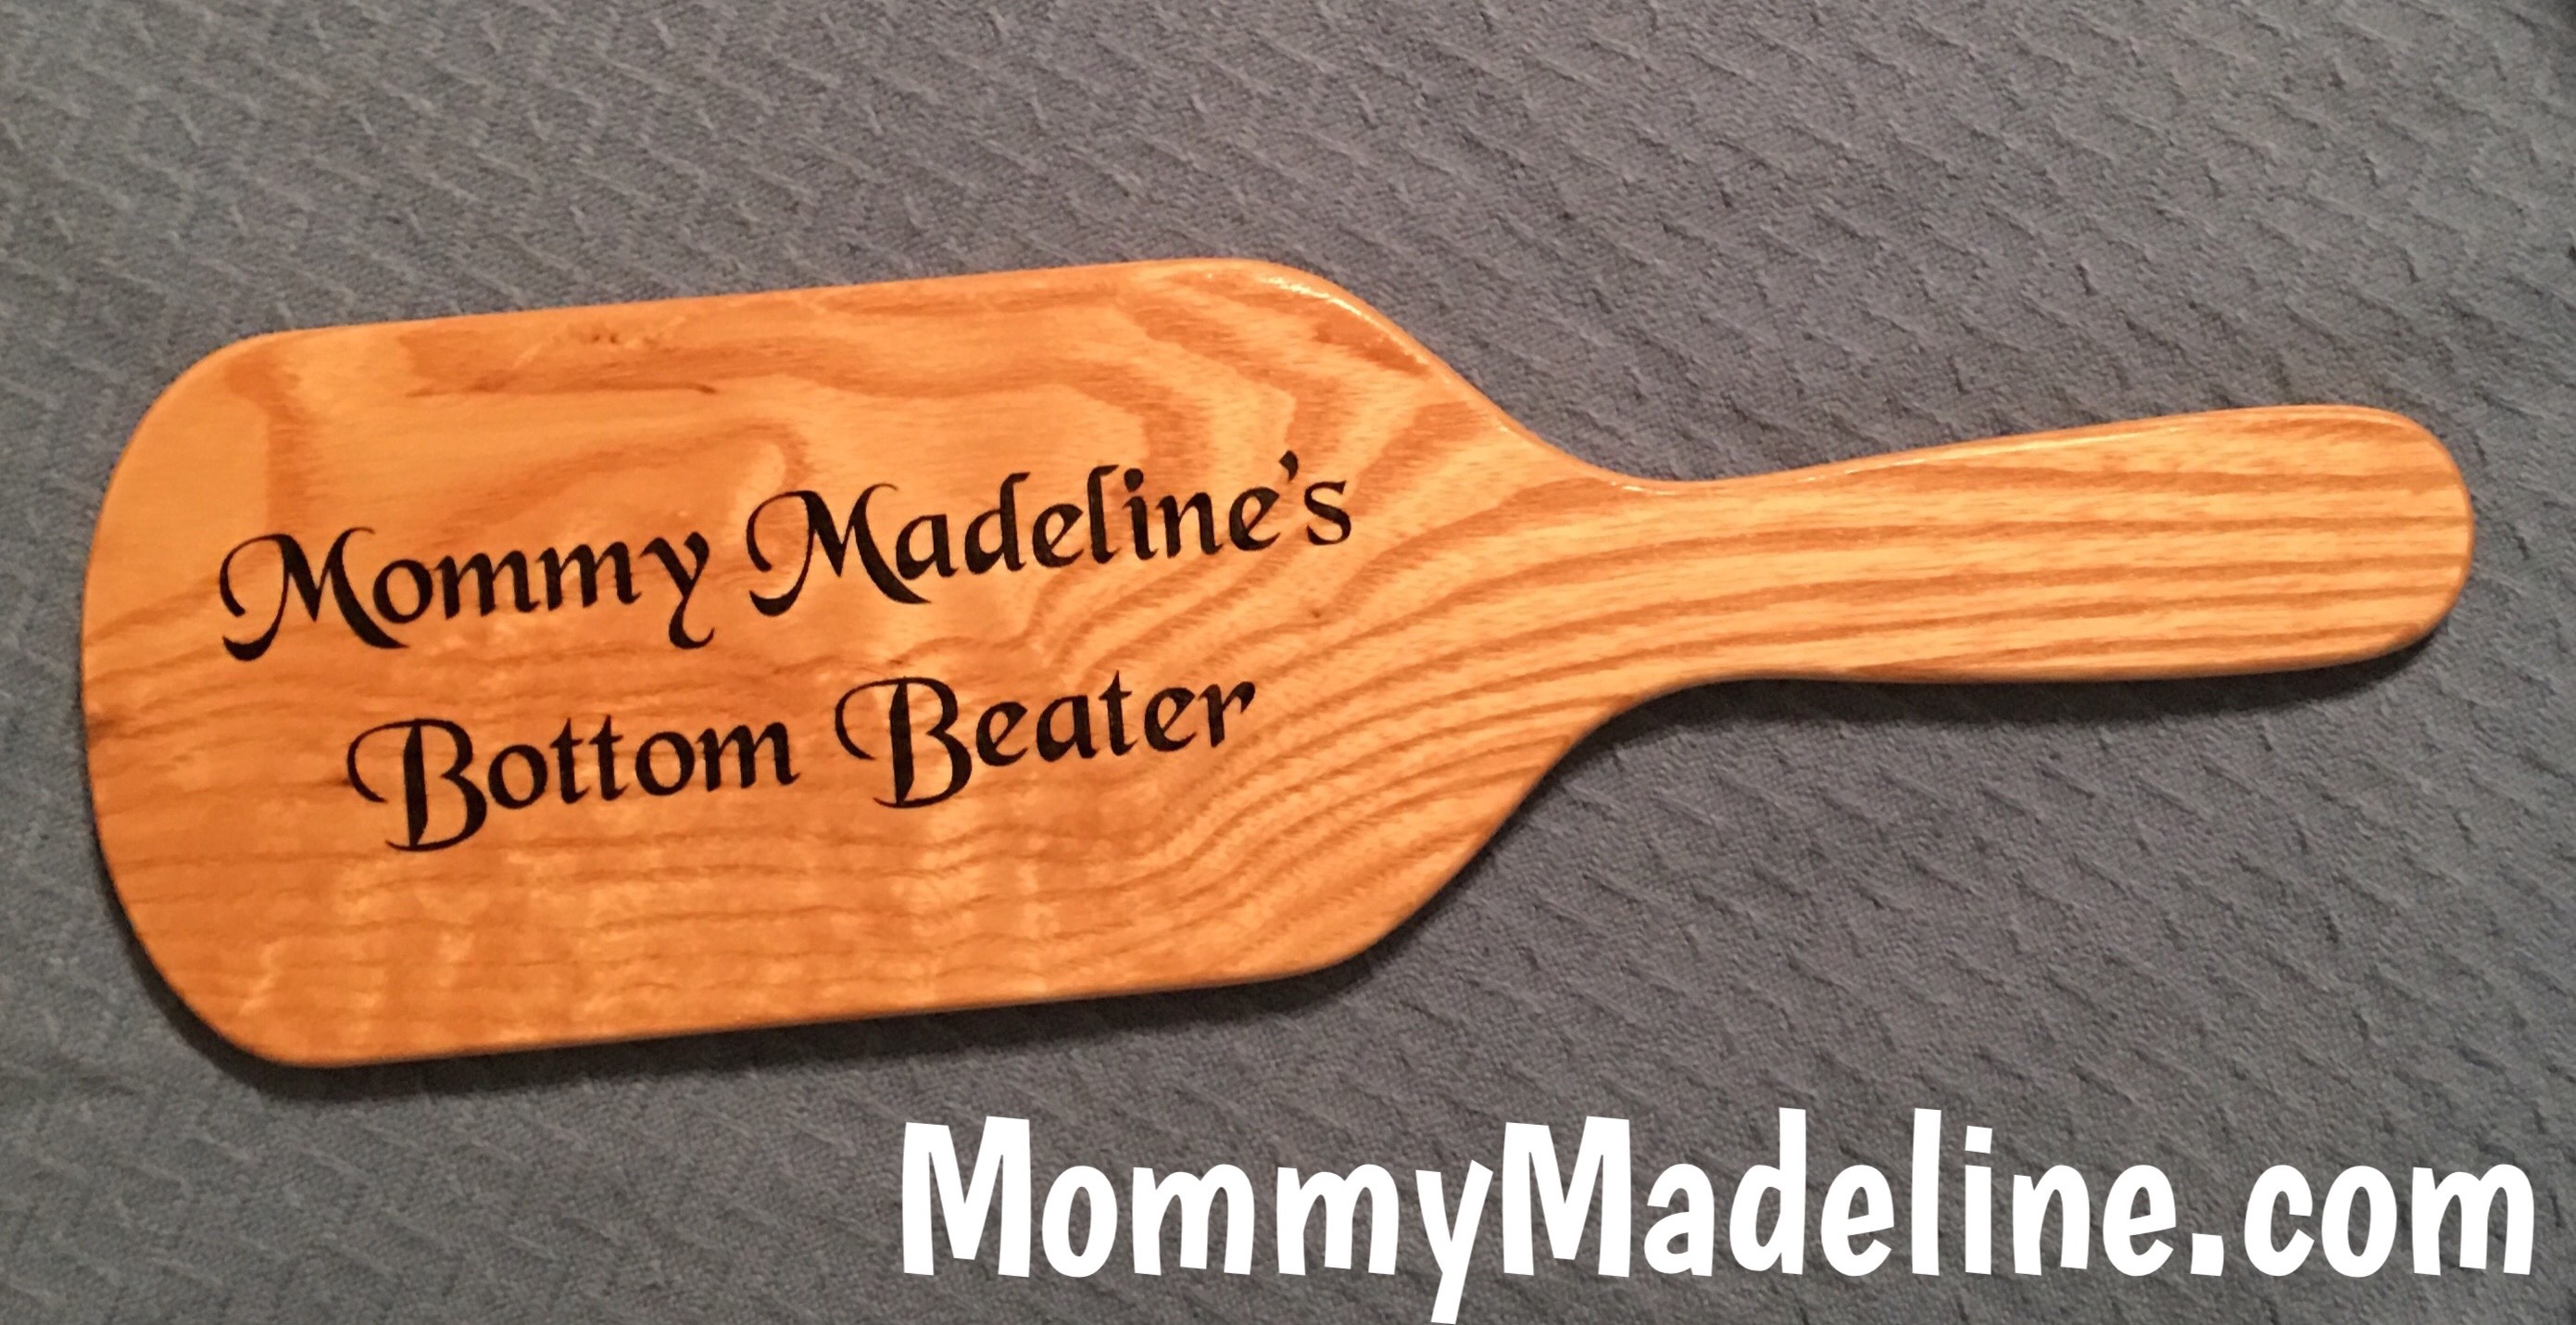 Mommy's Bottom Beater is a wooden paddle